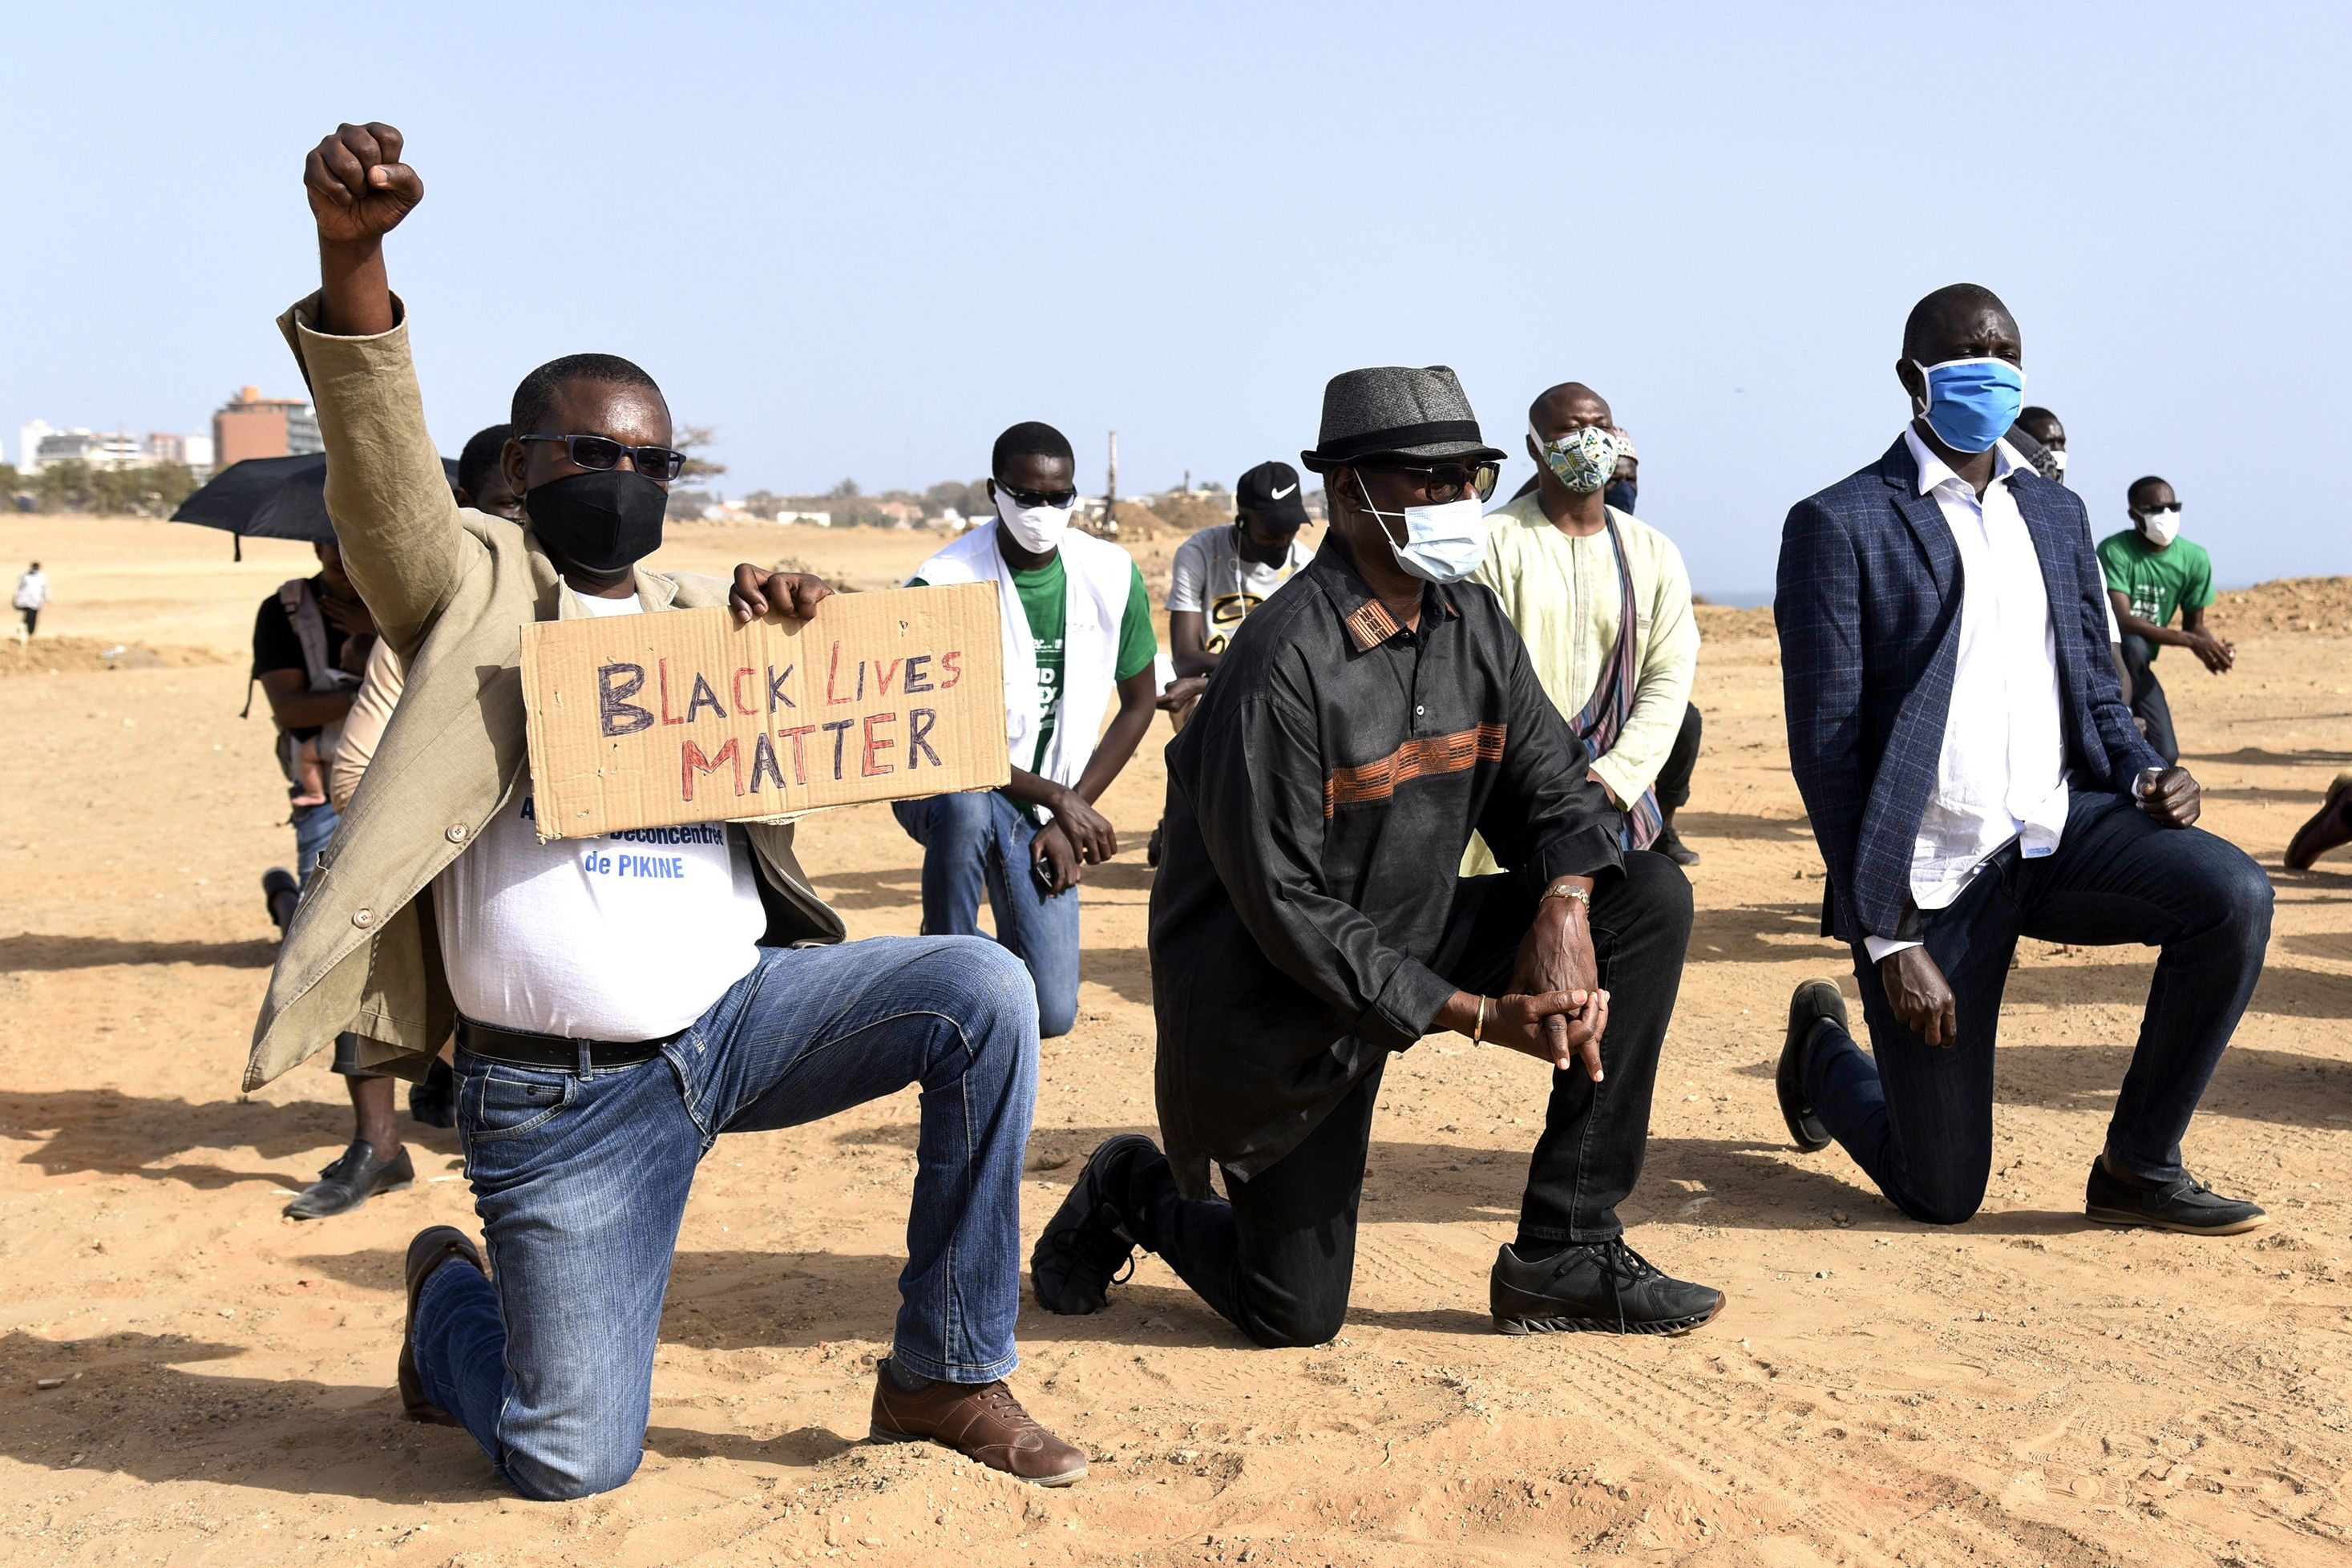 Protesters wearing face masks kneel in Dakar on June 9 during a rally in solidarity with the Black Lives Matter movement, and against racism and police brutality in the wake of the death of George Floyd.